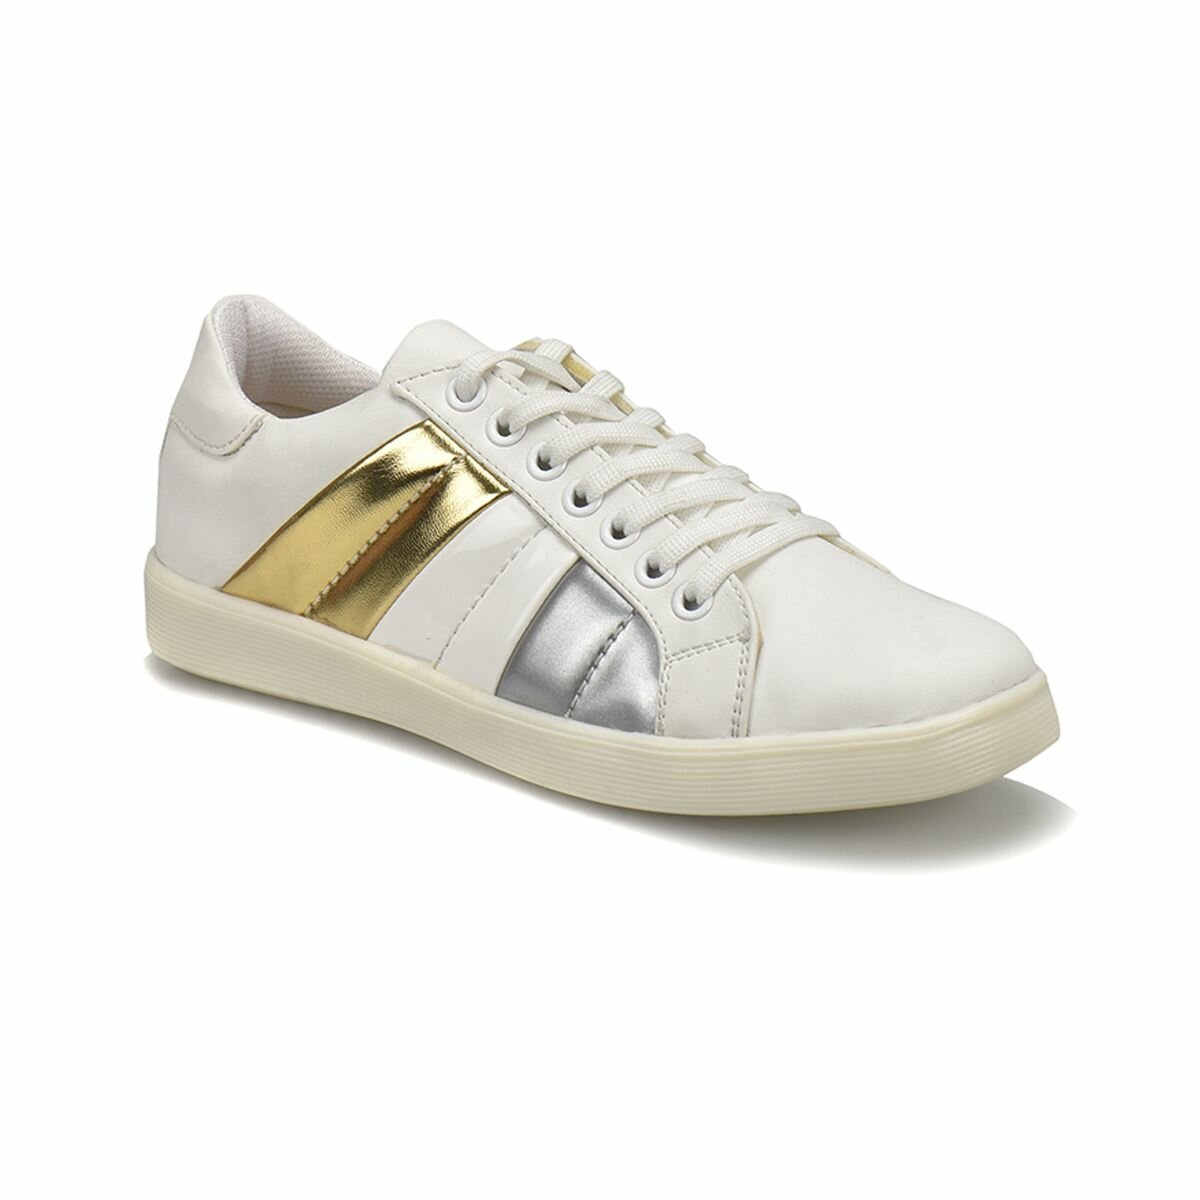 FLO CS18046 White Women 'S Sneaker Shoes Art Bella